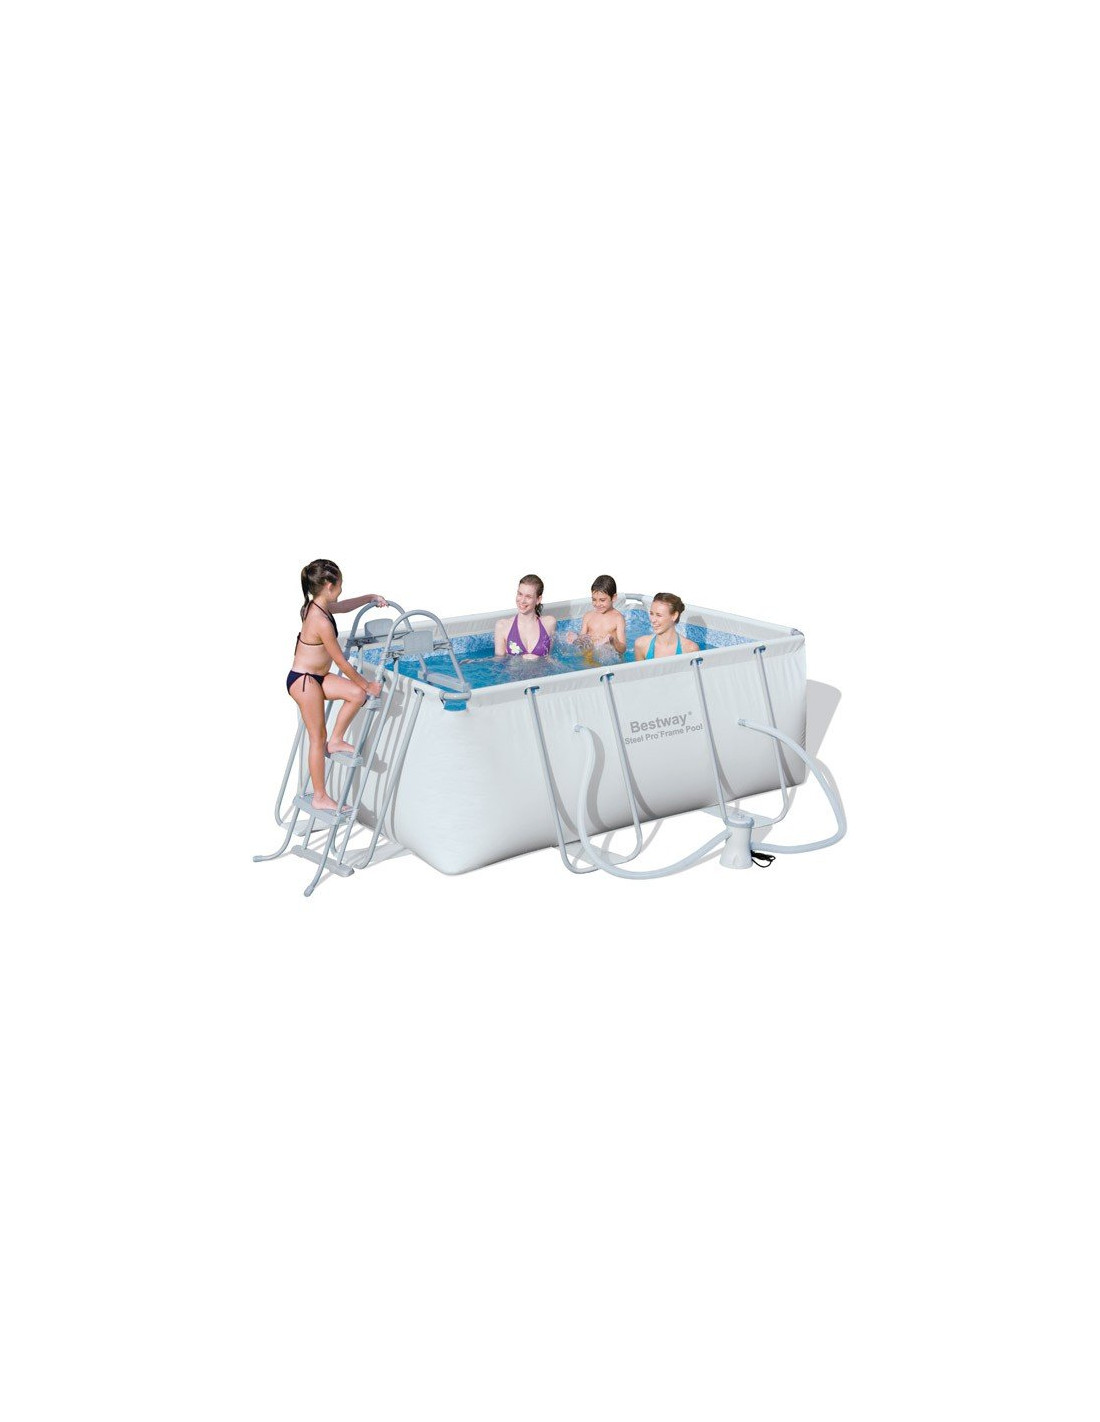 Piscine tubulaire rectangulaire bestway avec filtre for Pieces detachees piscine hors sol bestway